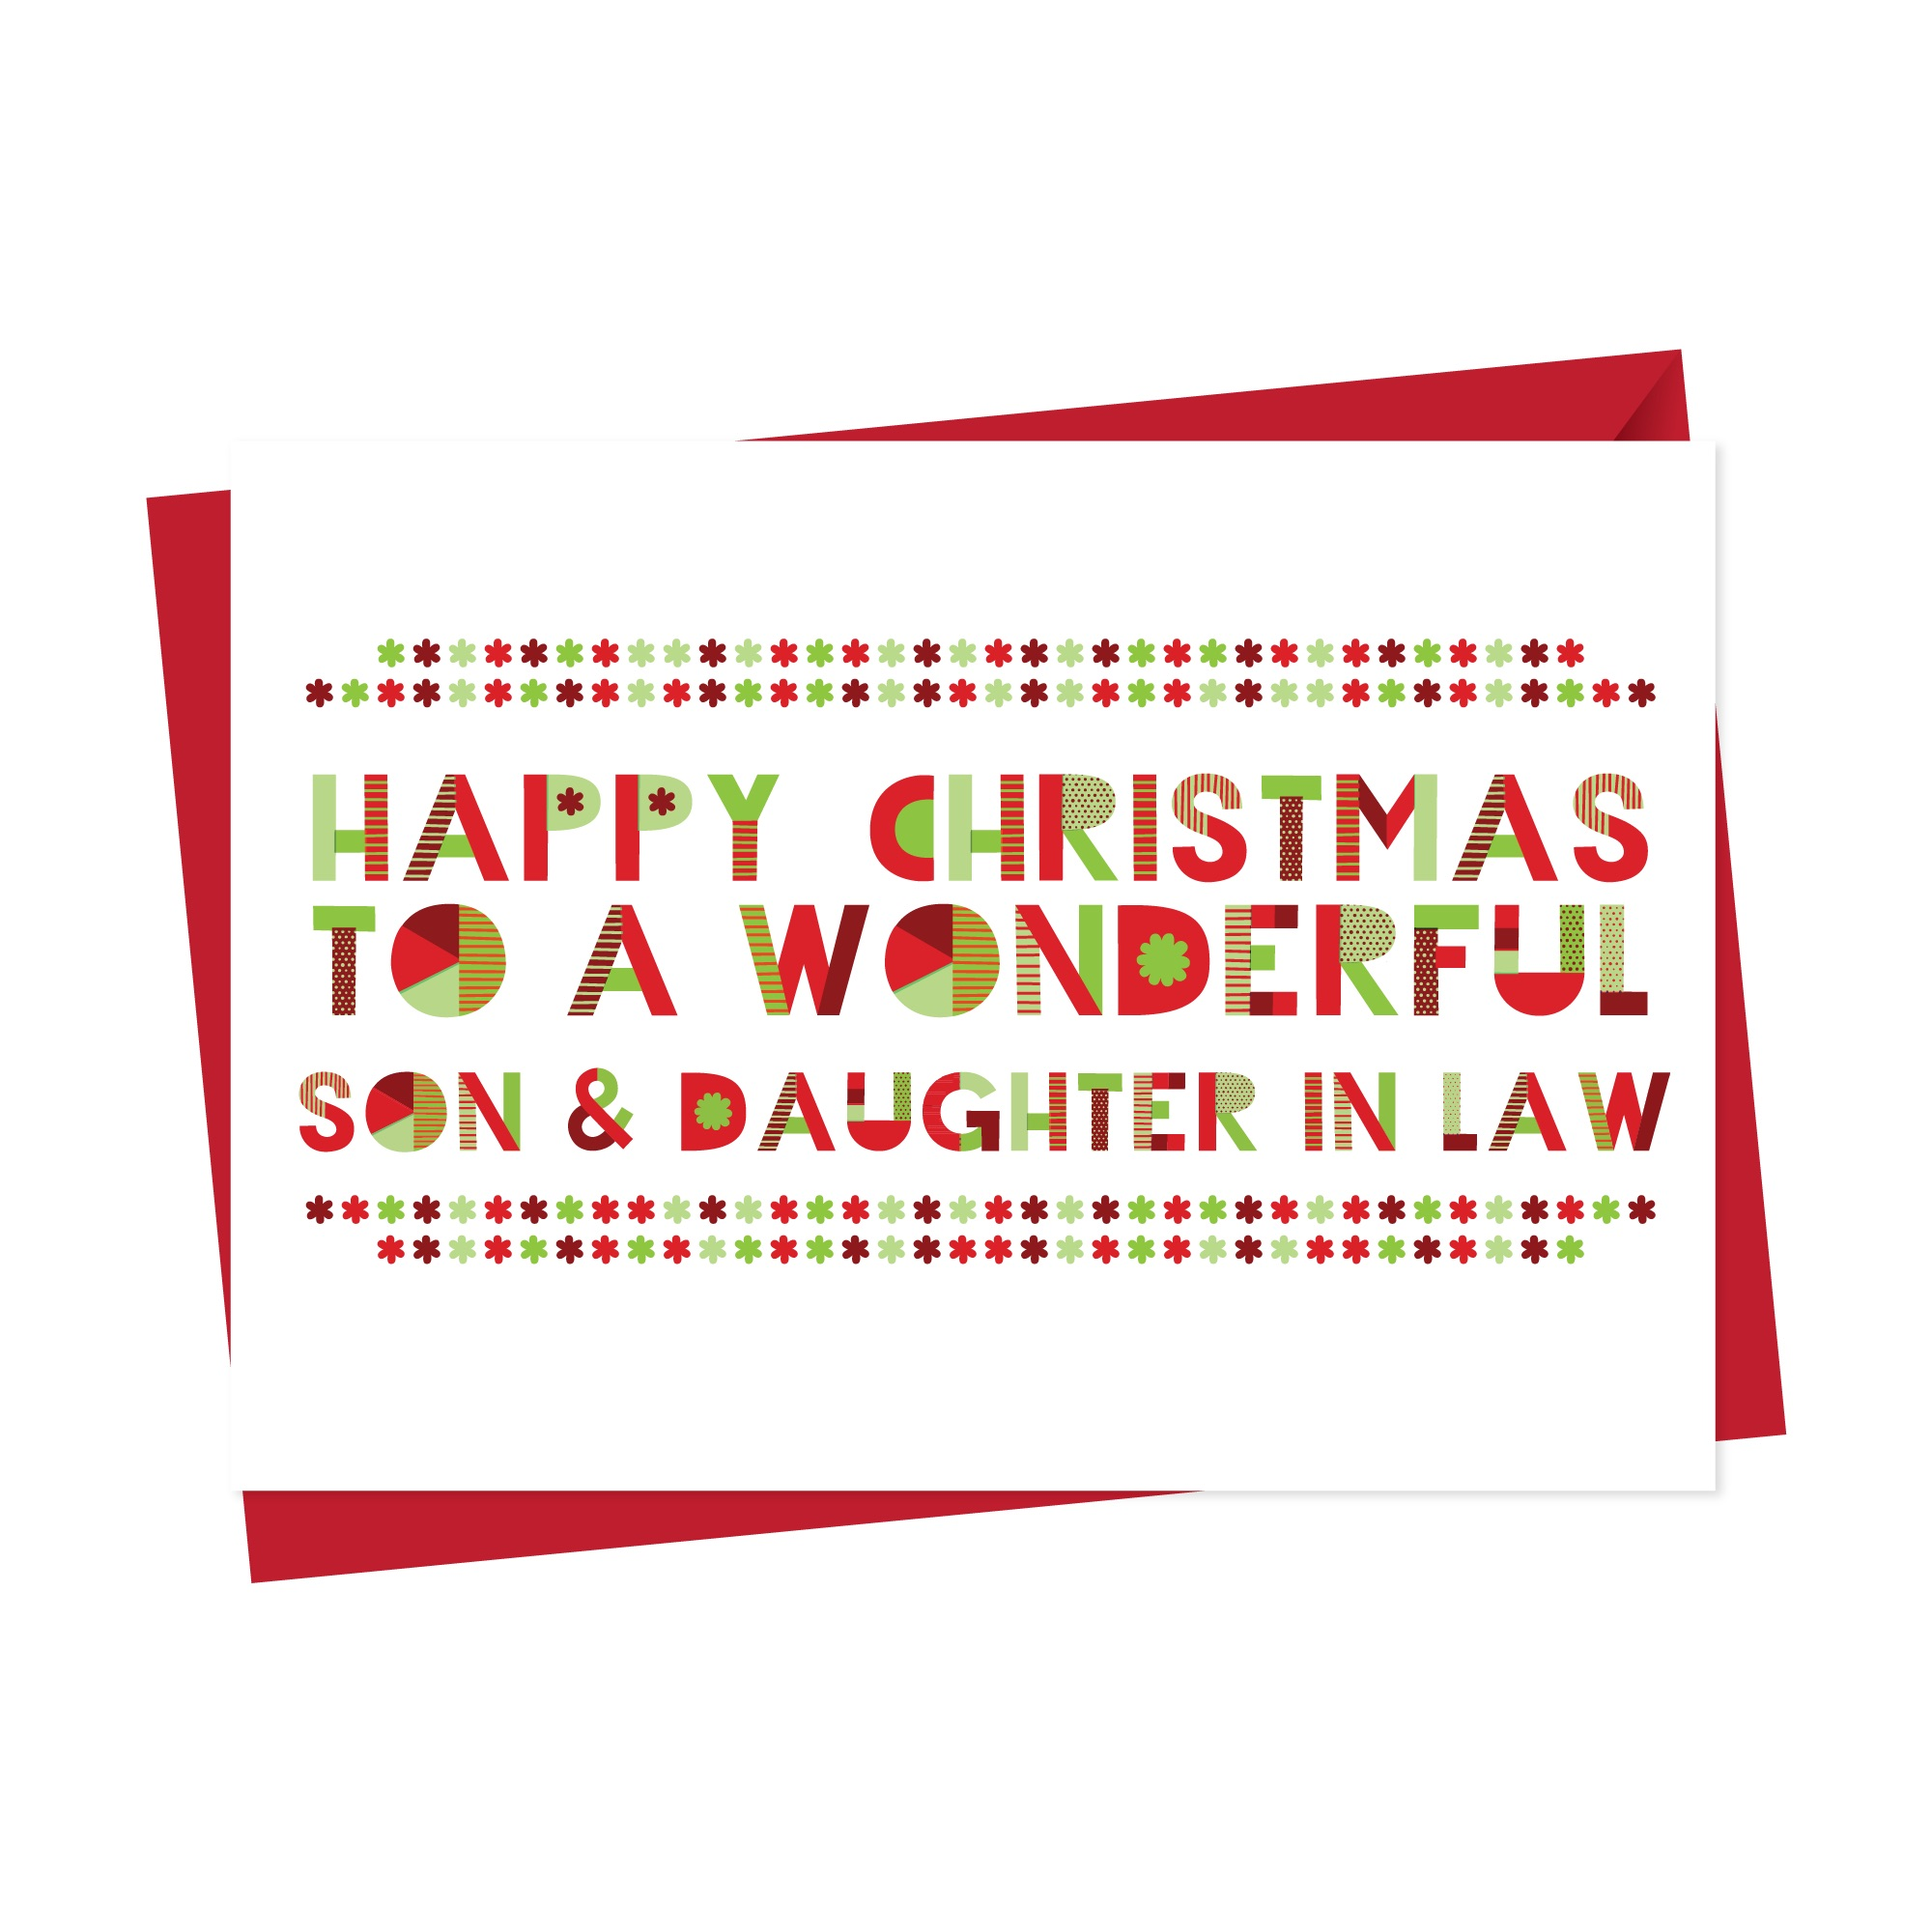 Wonderful Son&Daughter in Law Christmas Card